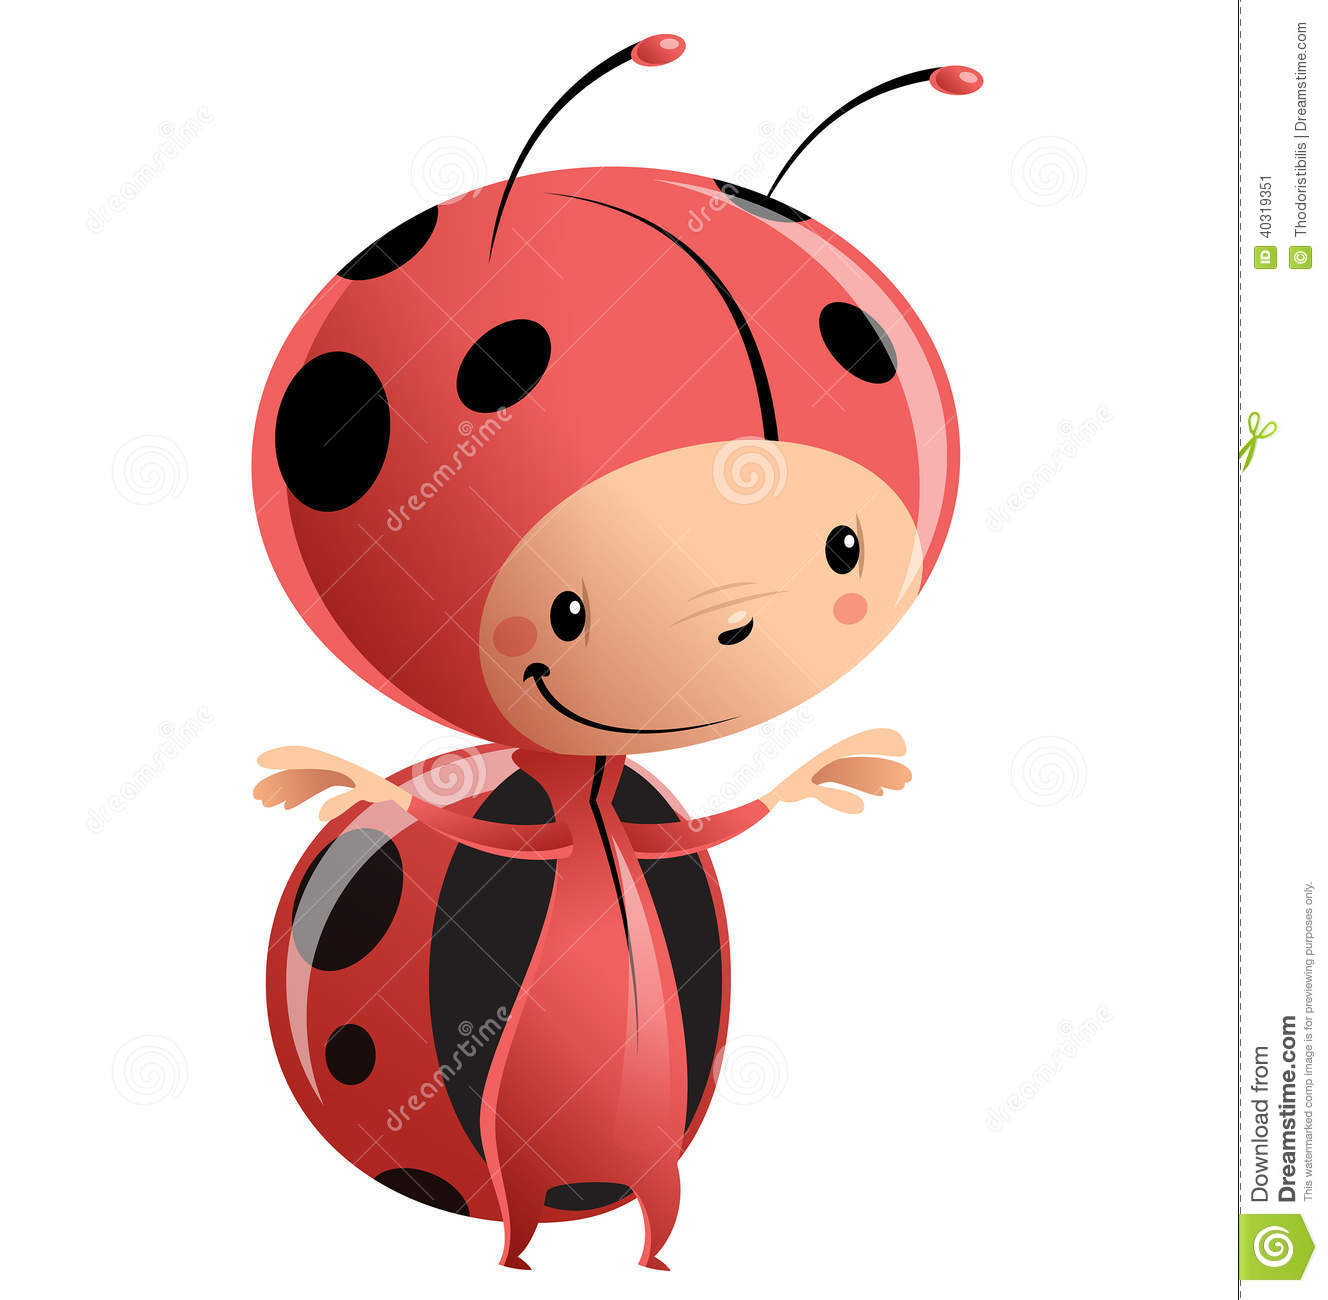 Cartoon Vector Illustration With Child In Funny Red Lady Bug Suit With